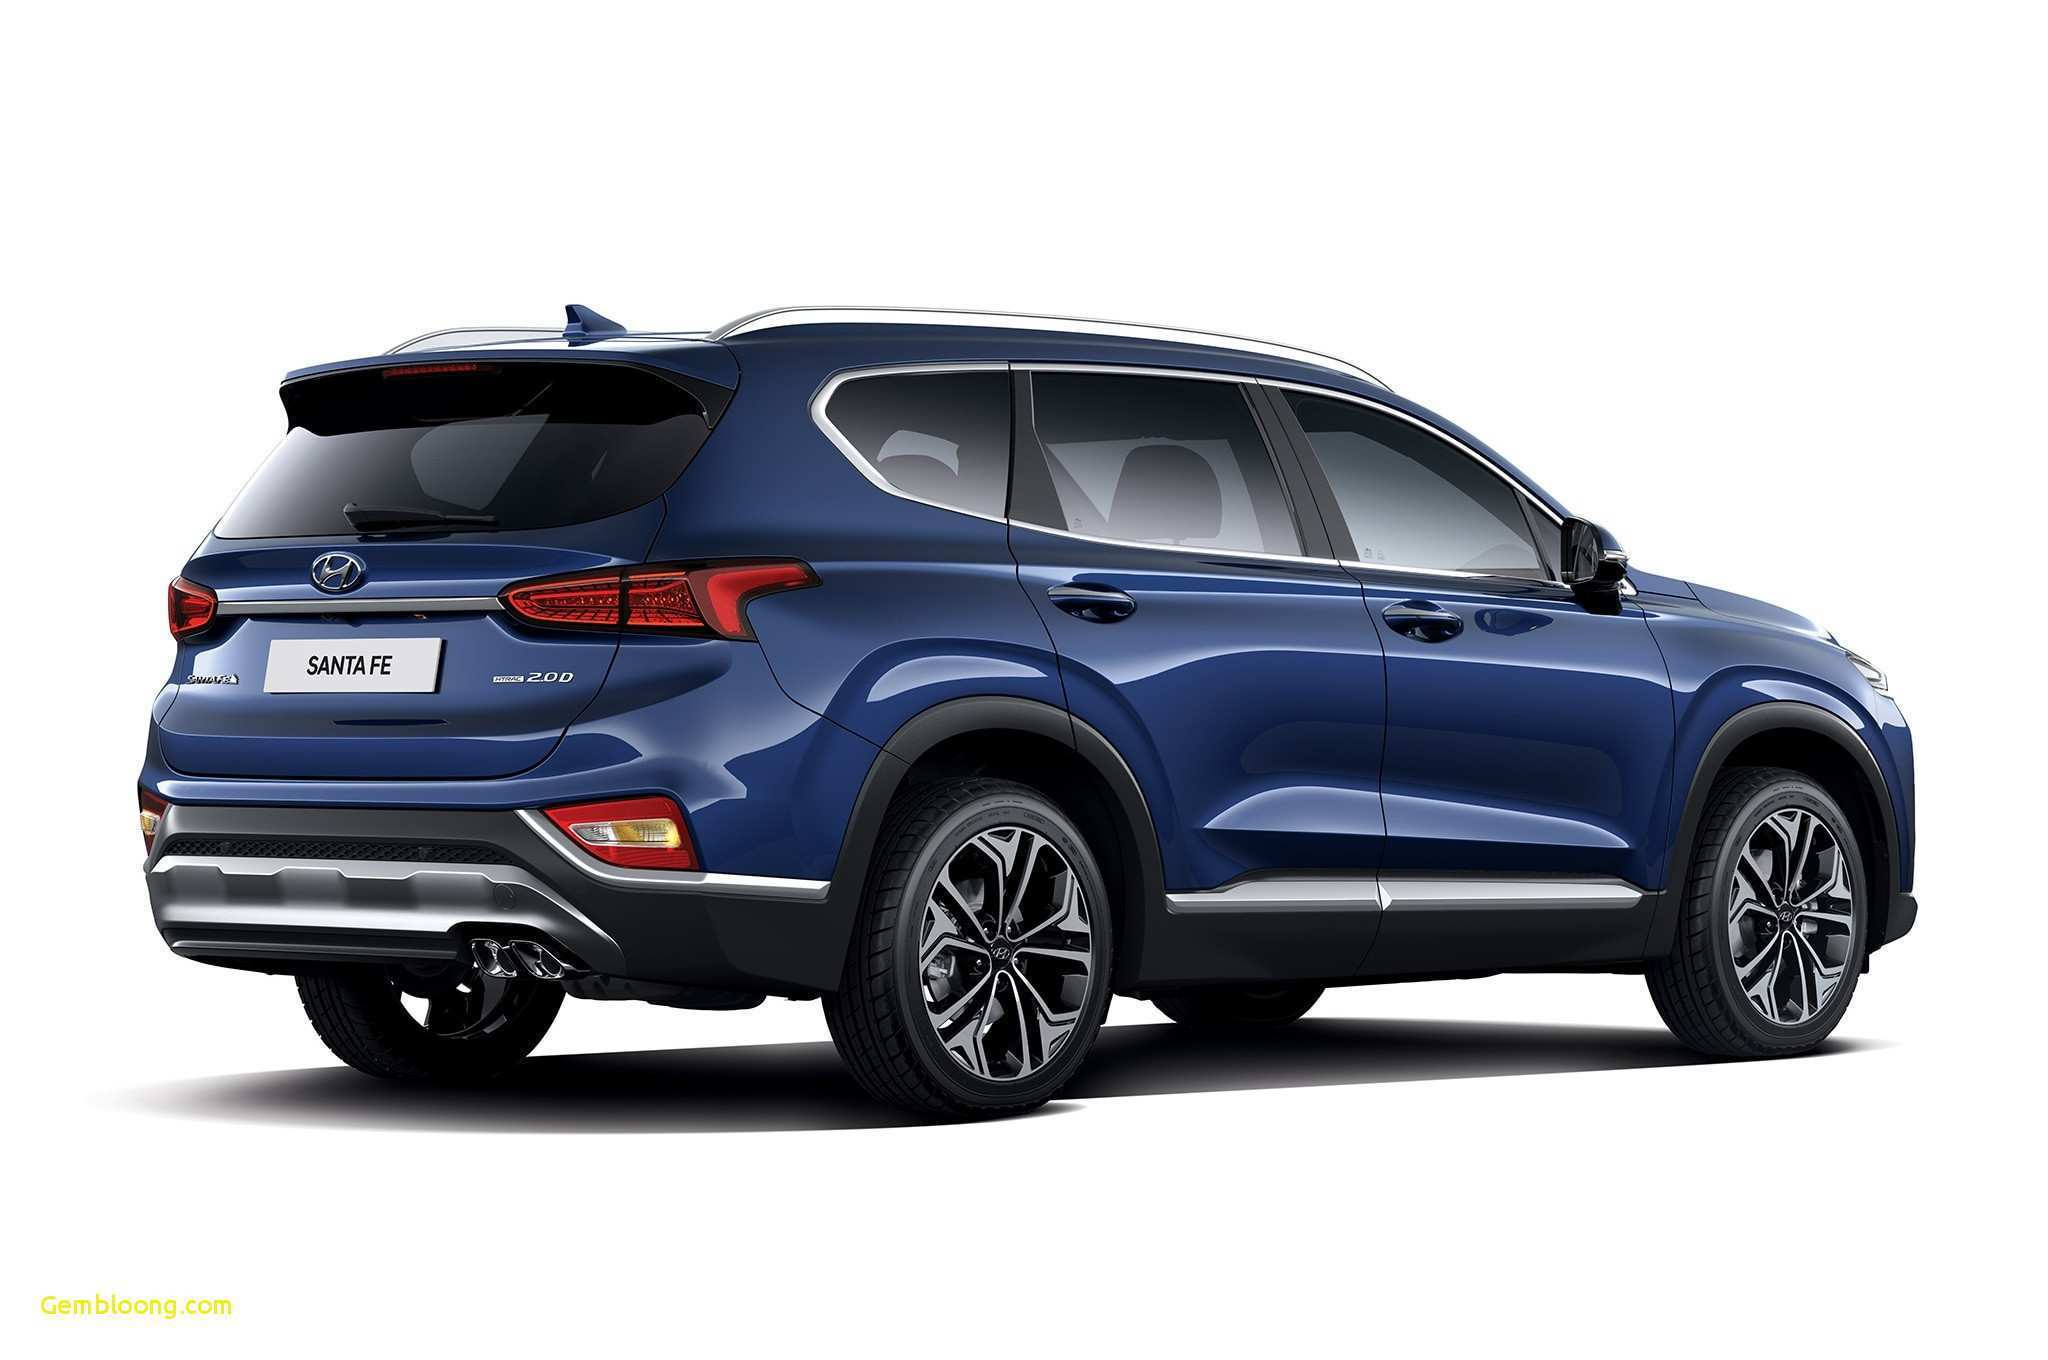 73 The Best 2019 Hyundai Veracruz Review